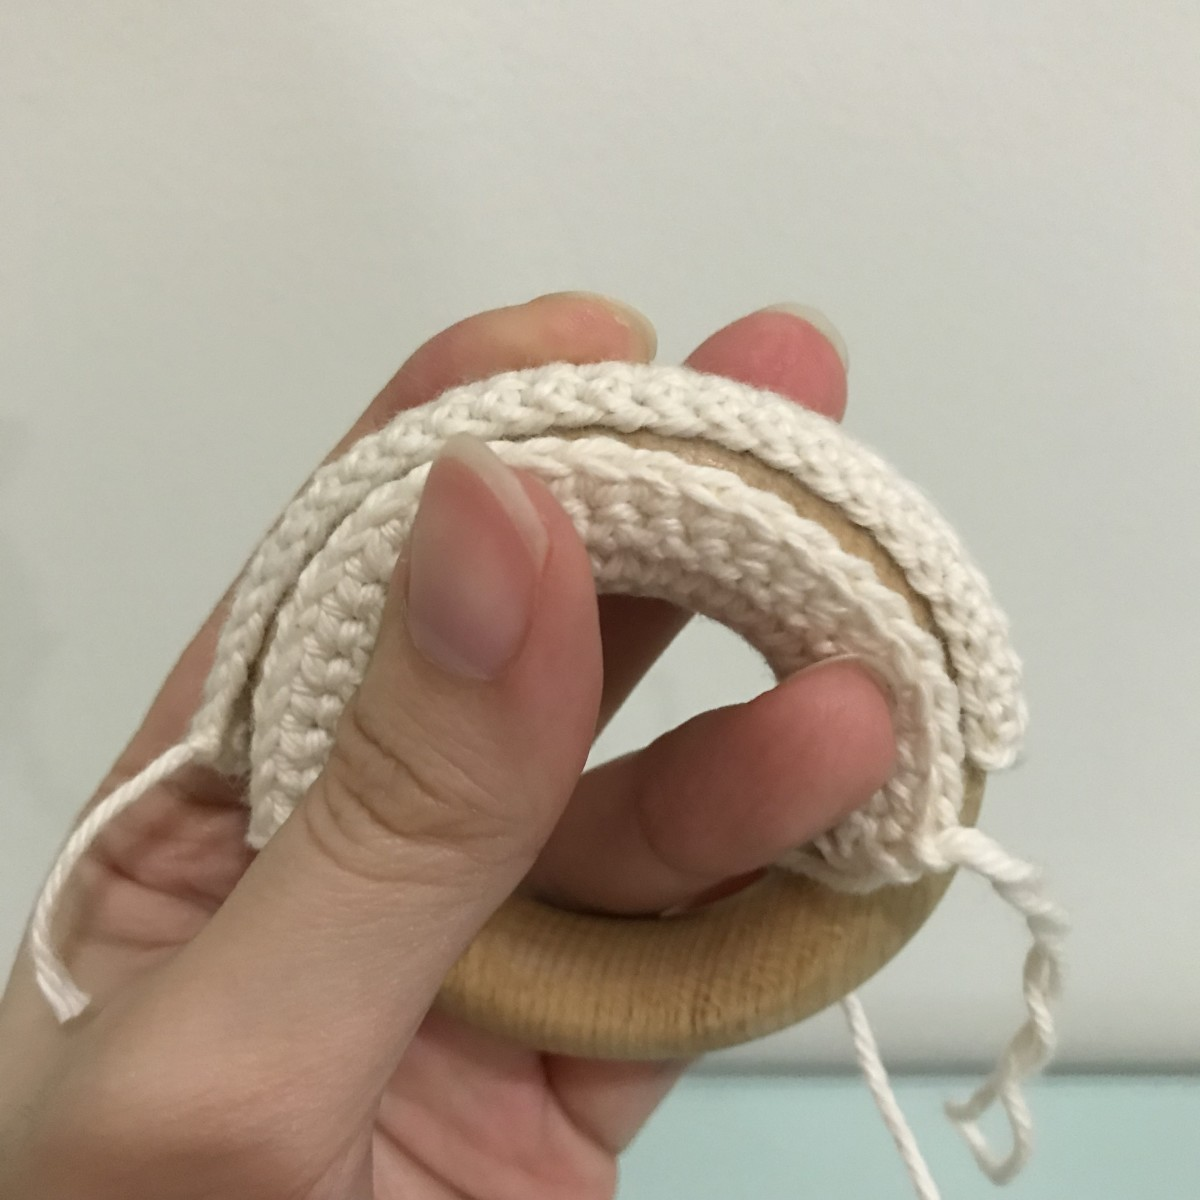 Once the rectangular piece can completely cover the wooden ring, fasten off and sew the piece closed with the tail end.